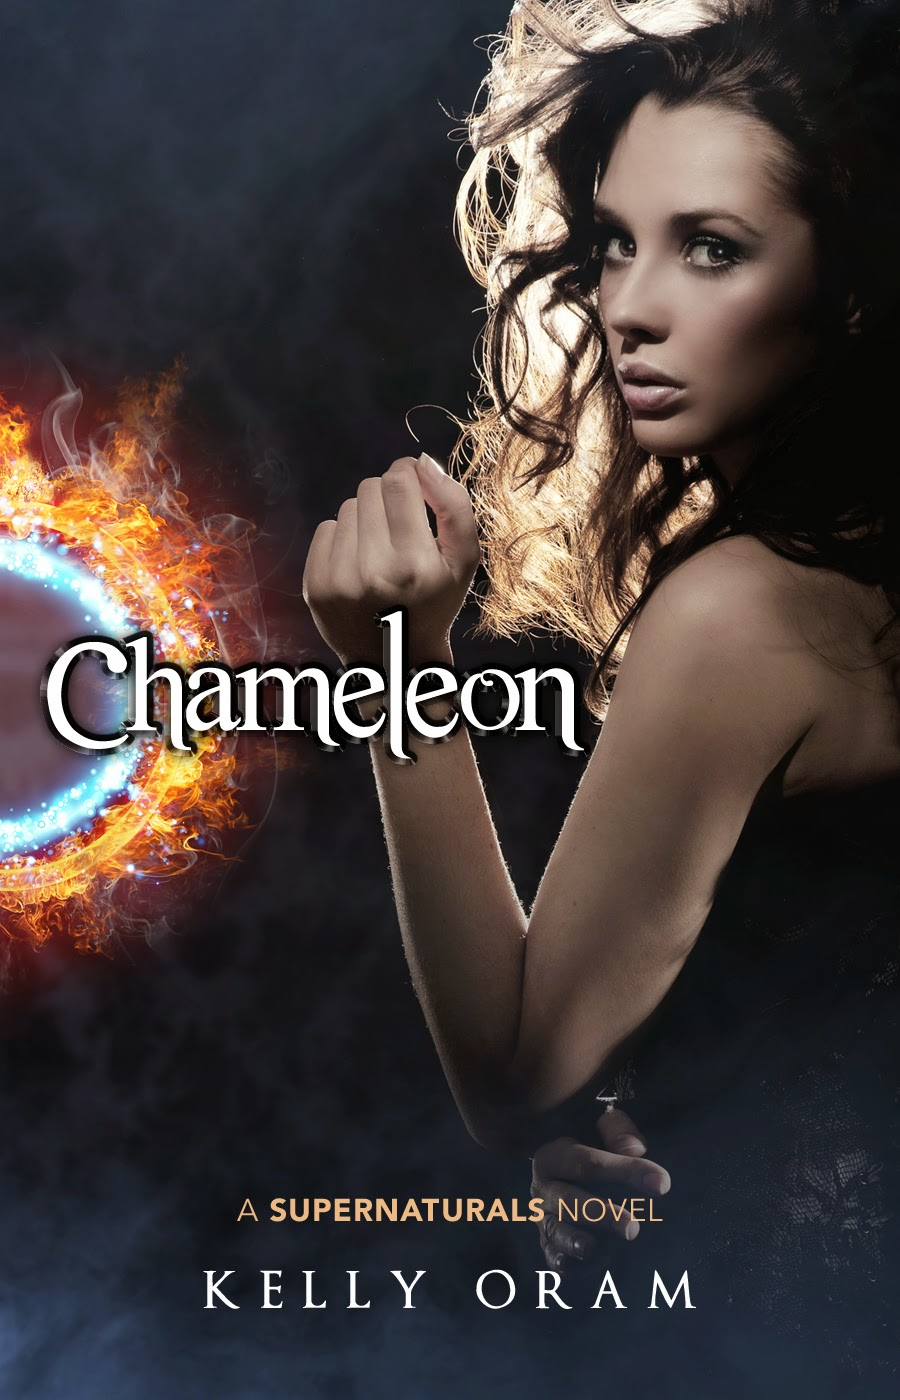 Chamaleon by Kelly Oram